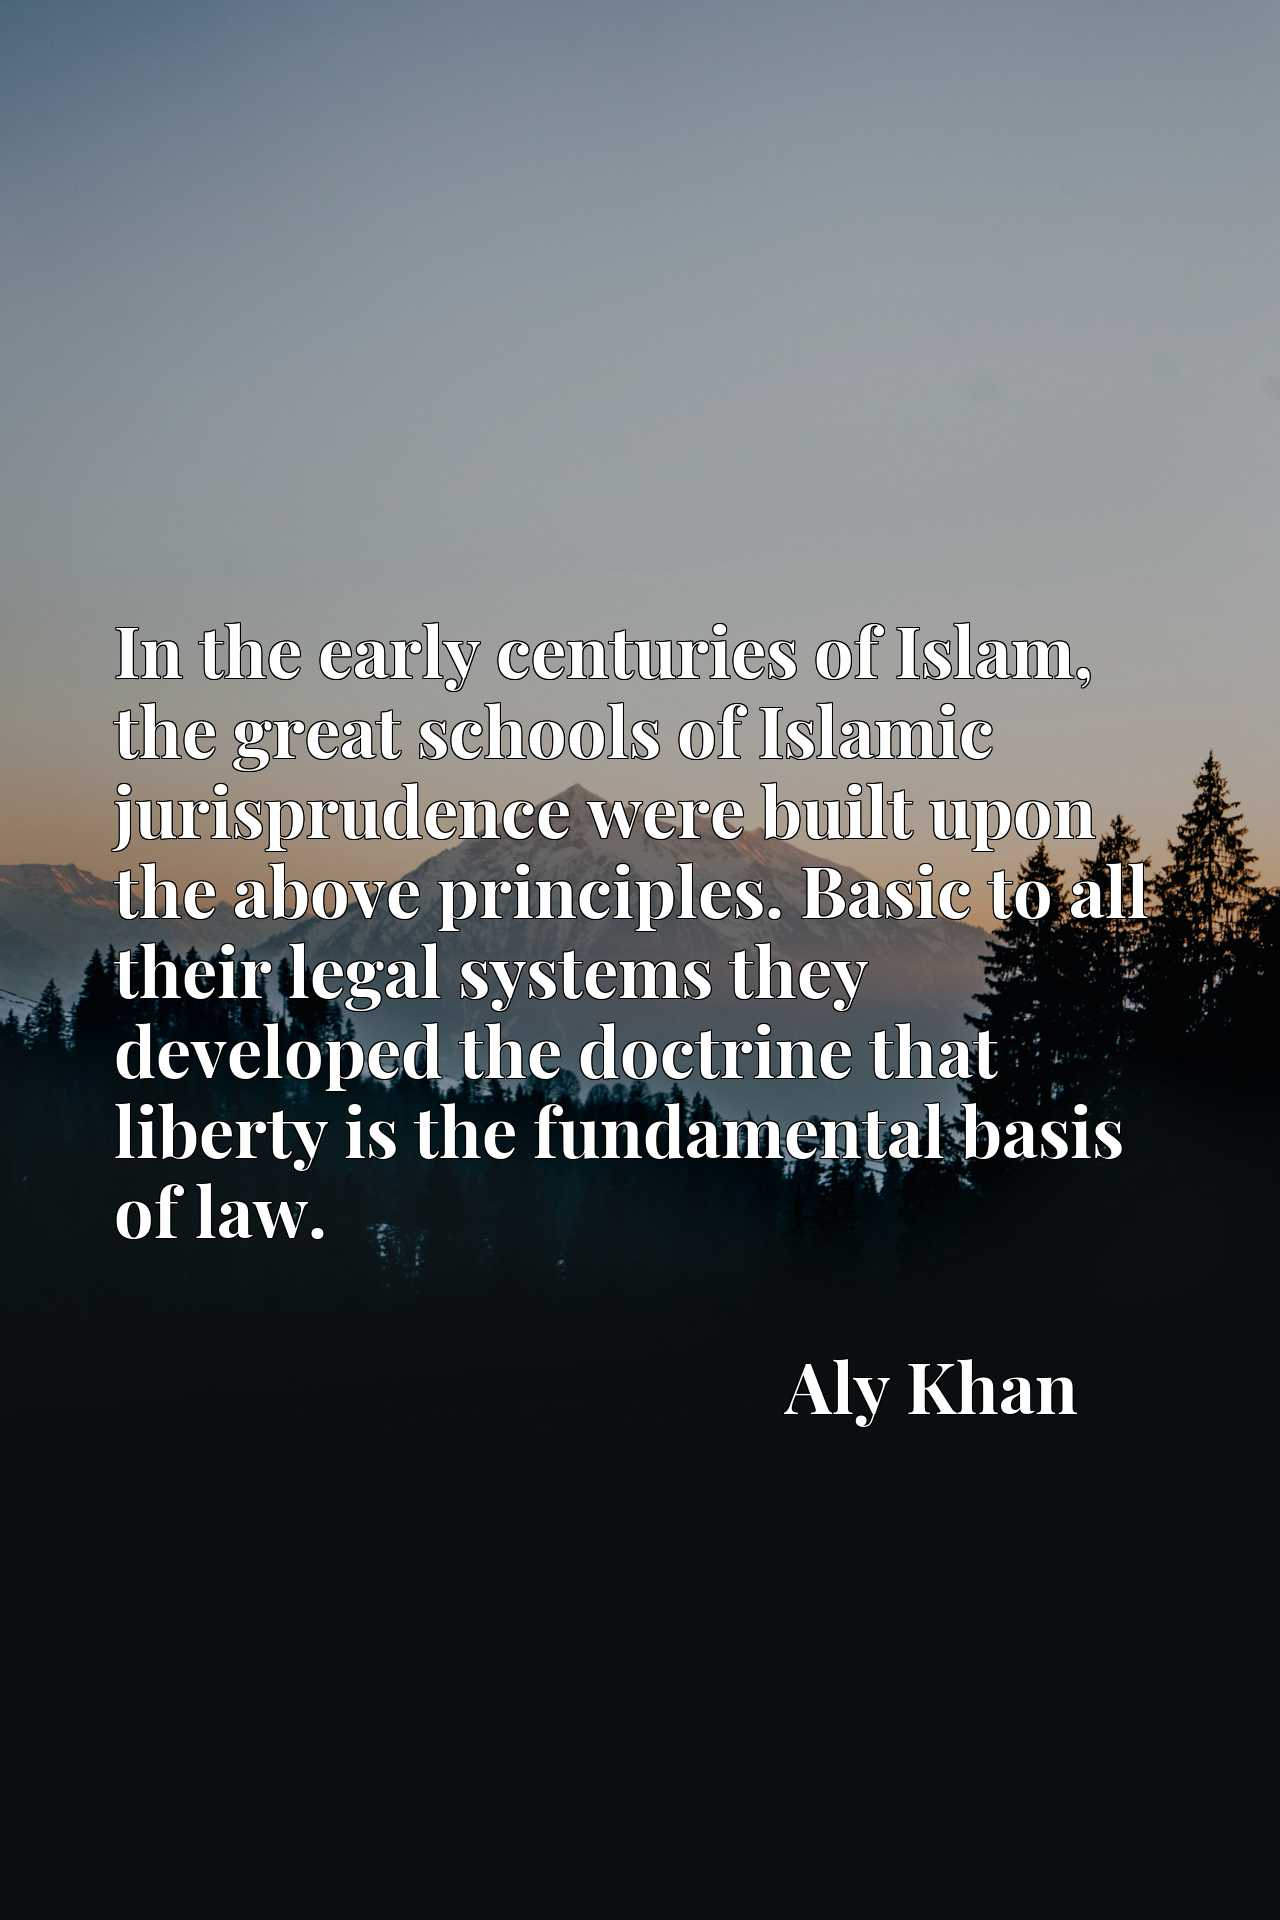 Quote Picture :In the early centuries of Islam, the great schools of Islamic jurisprudence were built upon the above principles. Basic to all their legal systems they developed the doctrine that liberty is the fundamental basis of law.